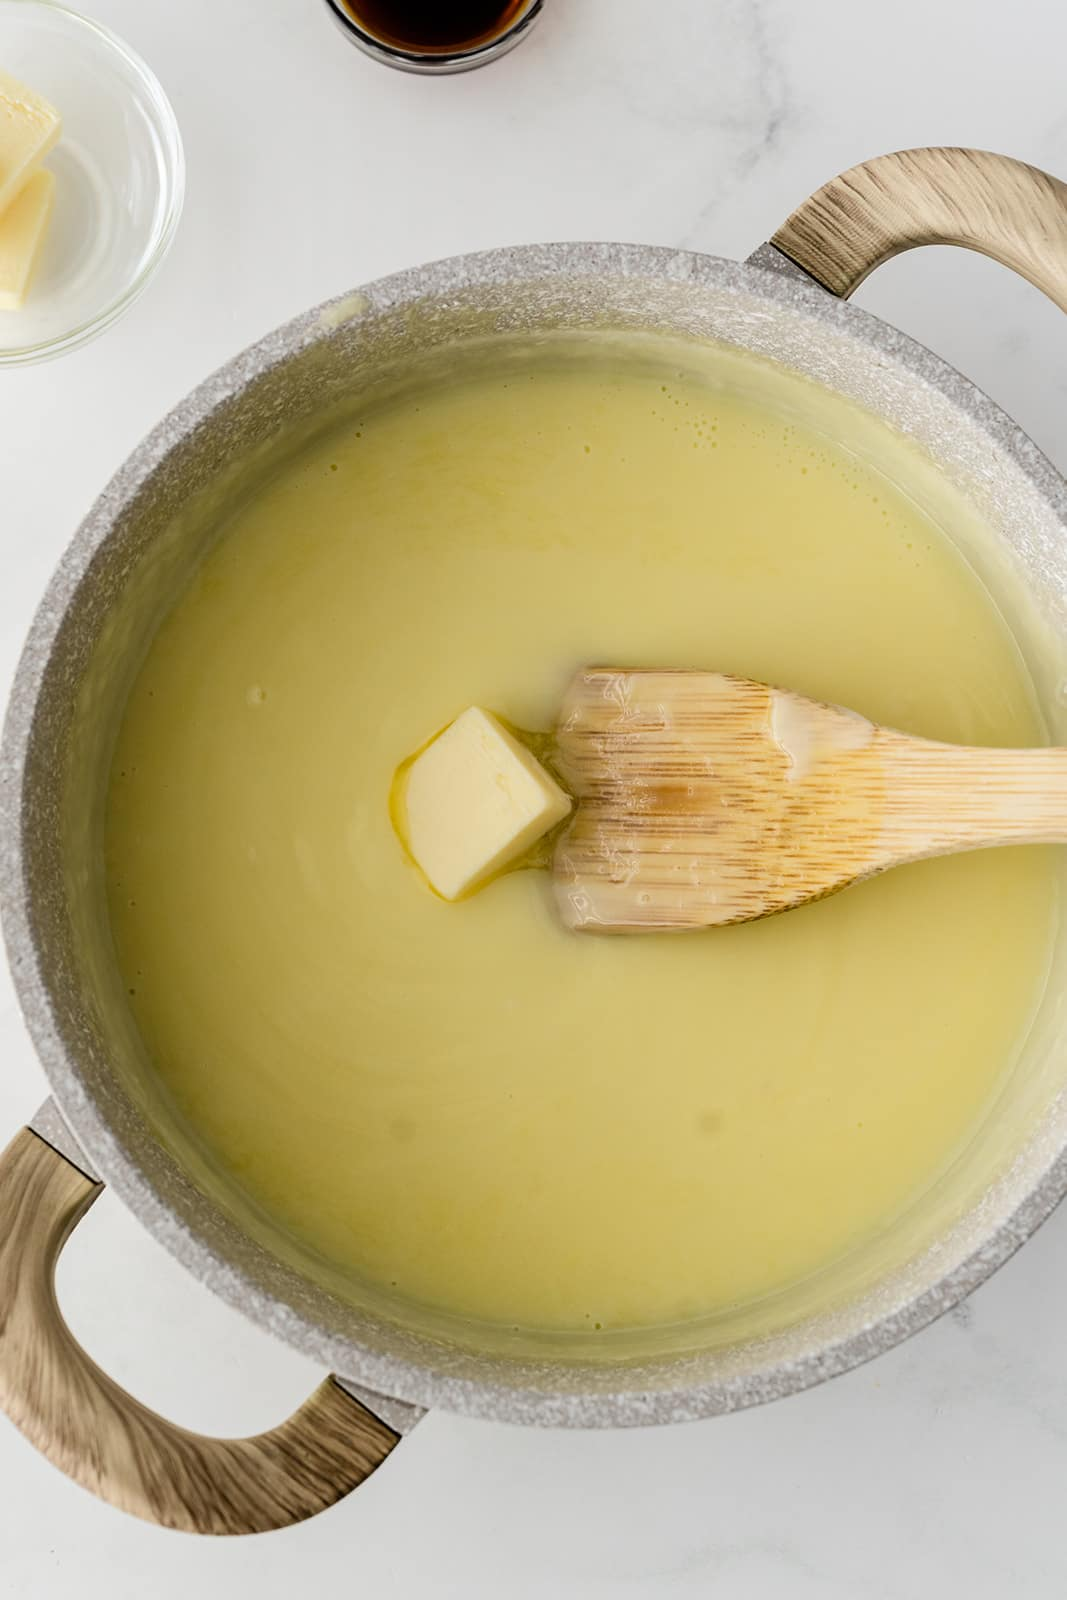 butter being melted in pudding mixture